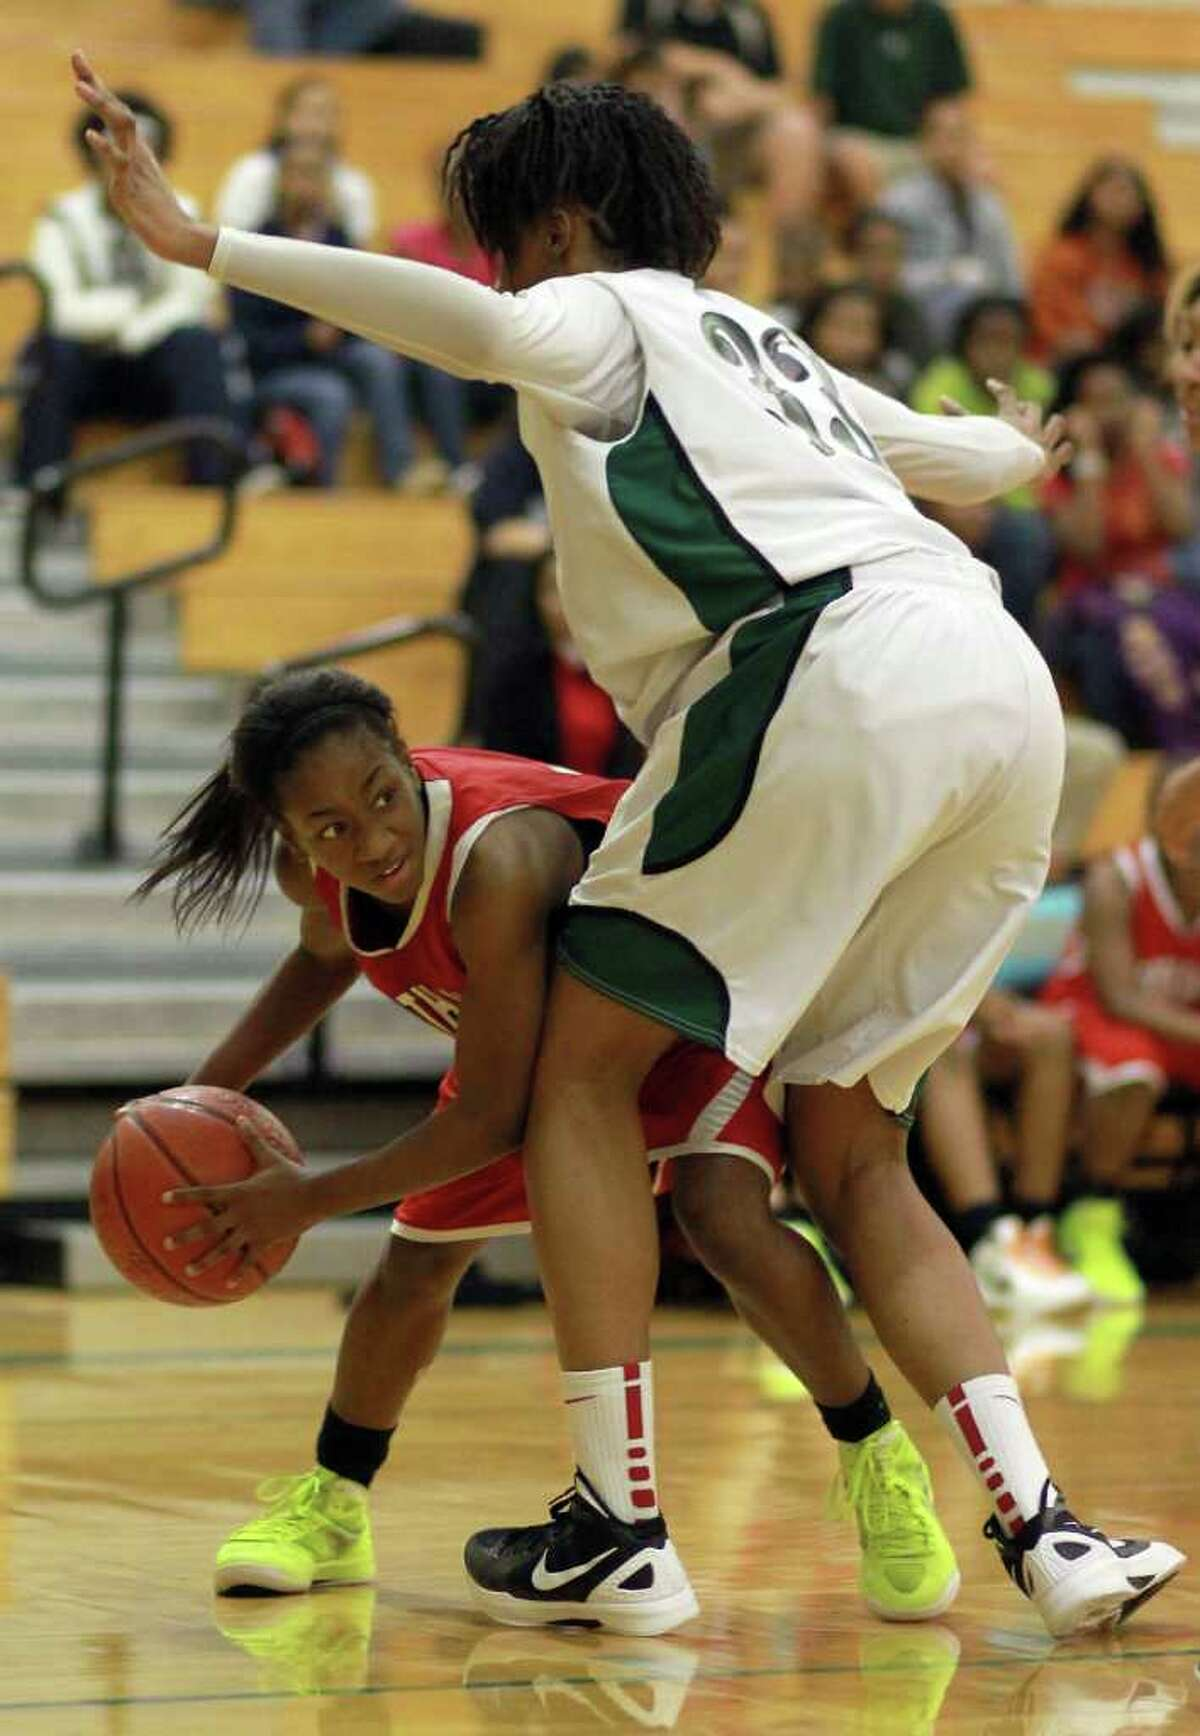 North Shore High School's Adriiana Jackson averaged 15 points and seven rebounds in wins over Channelview and Port Arthur Memorial, helping North Shore claim first in District 21-5A.